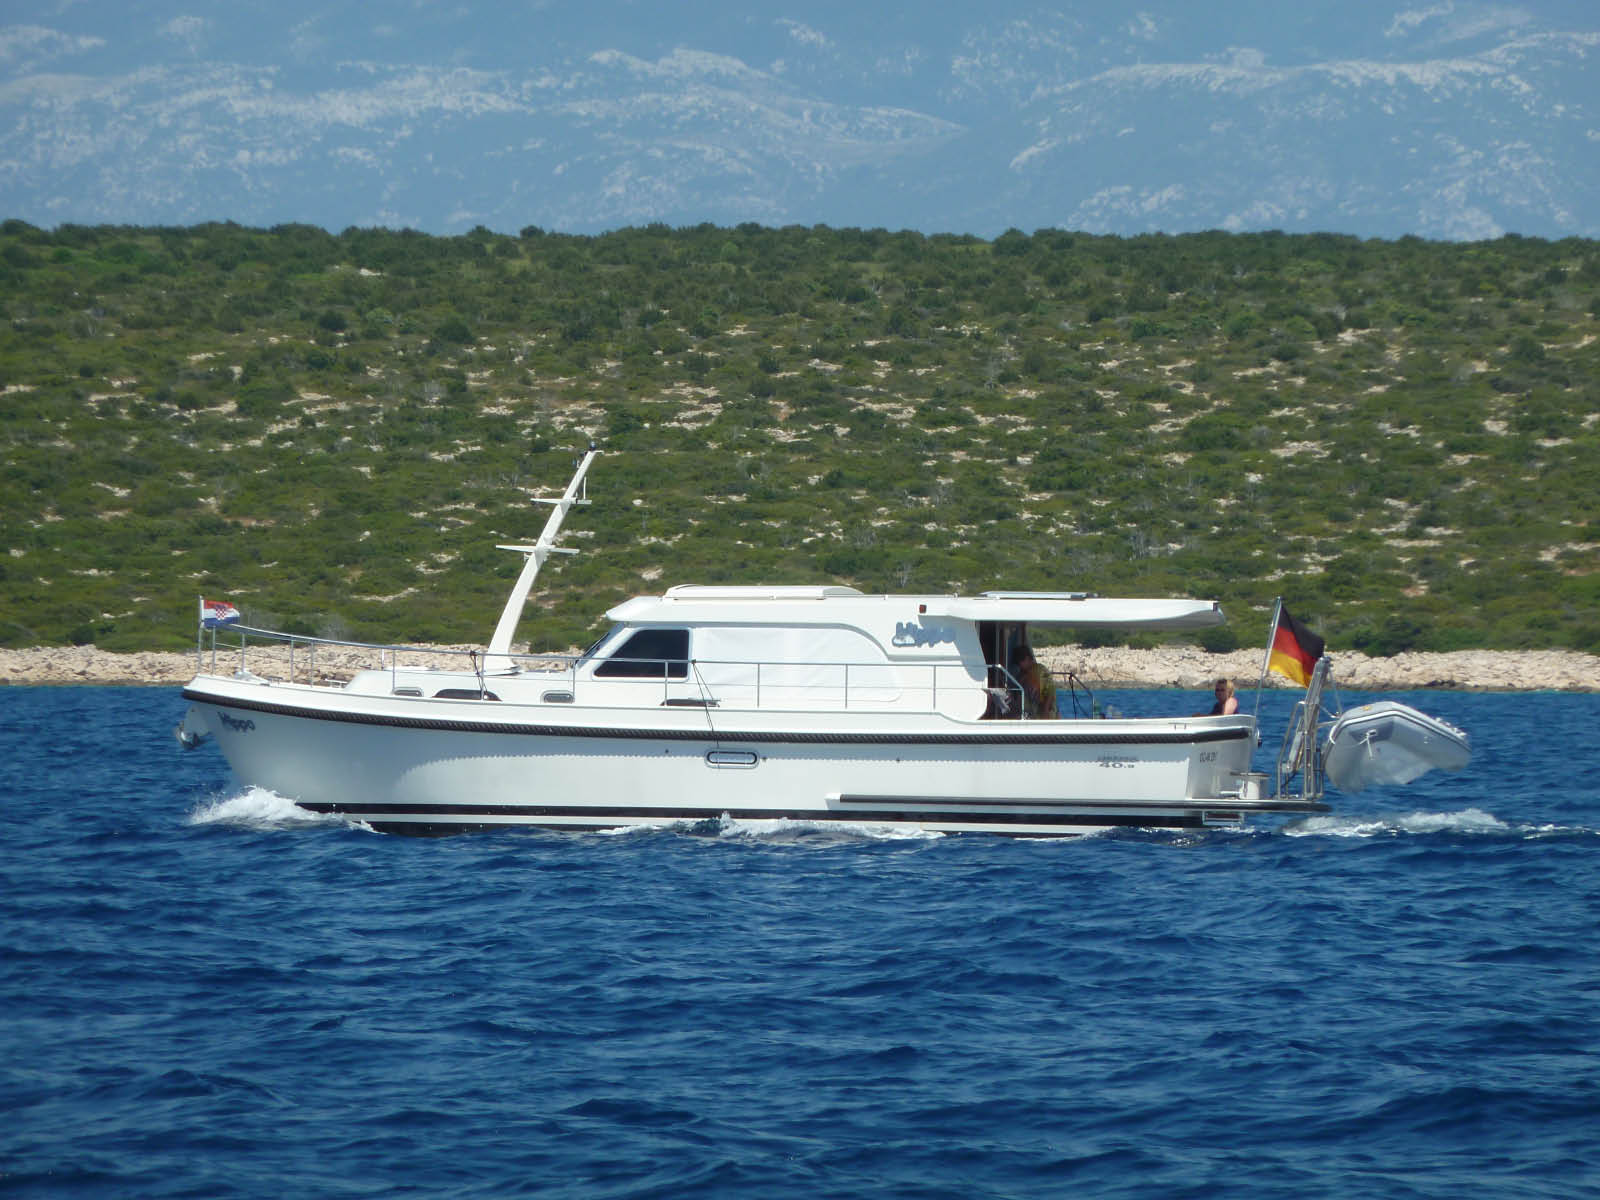 Cruising on a Linssen motoryacht in Croatia